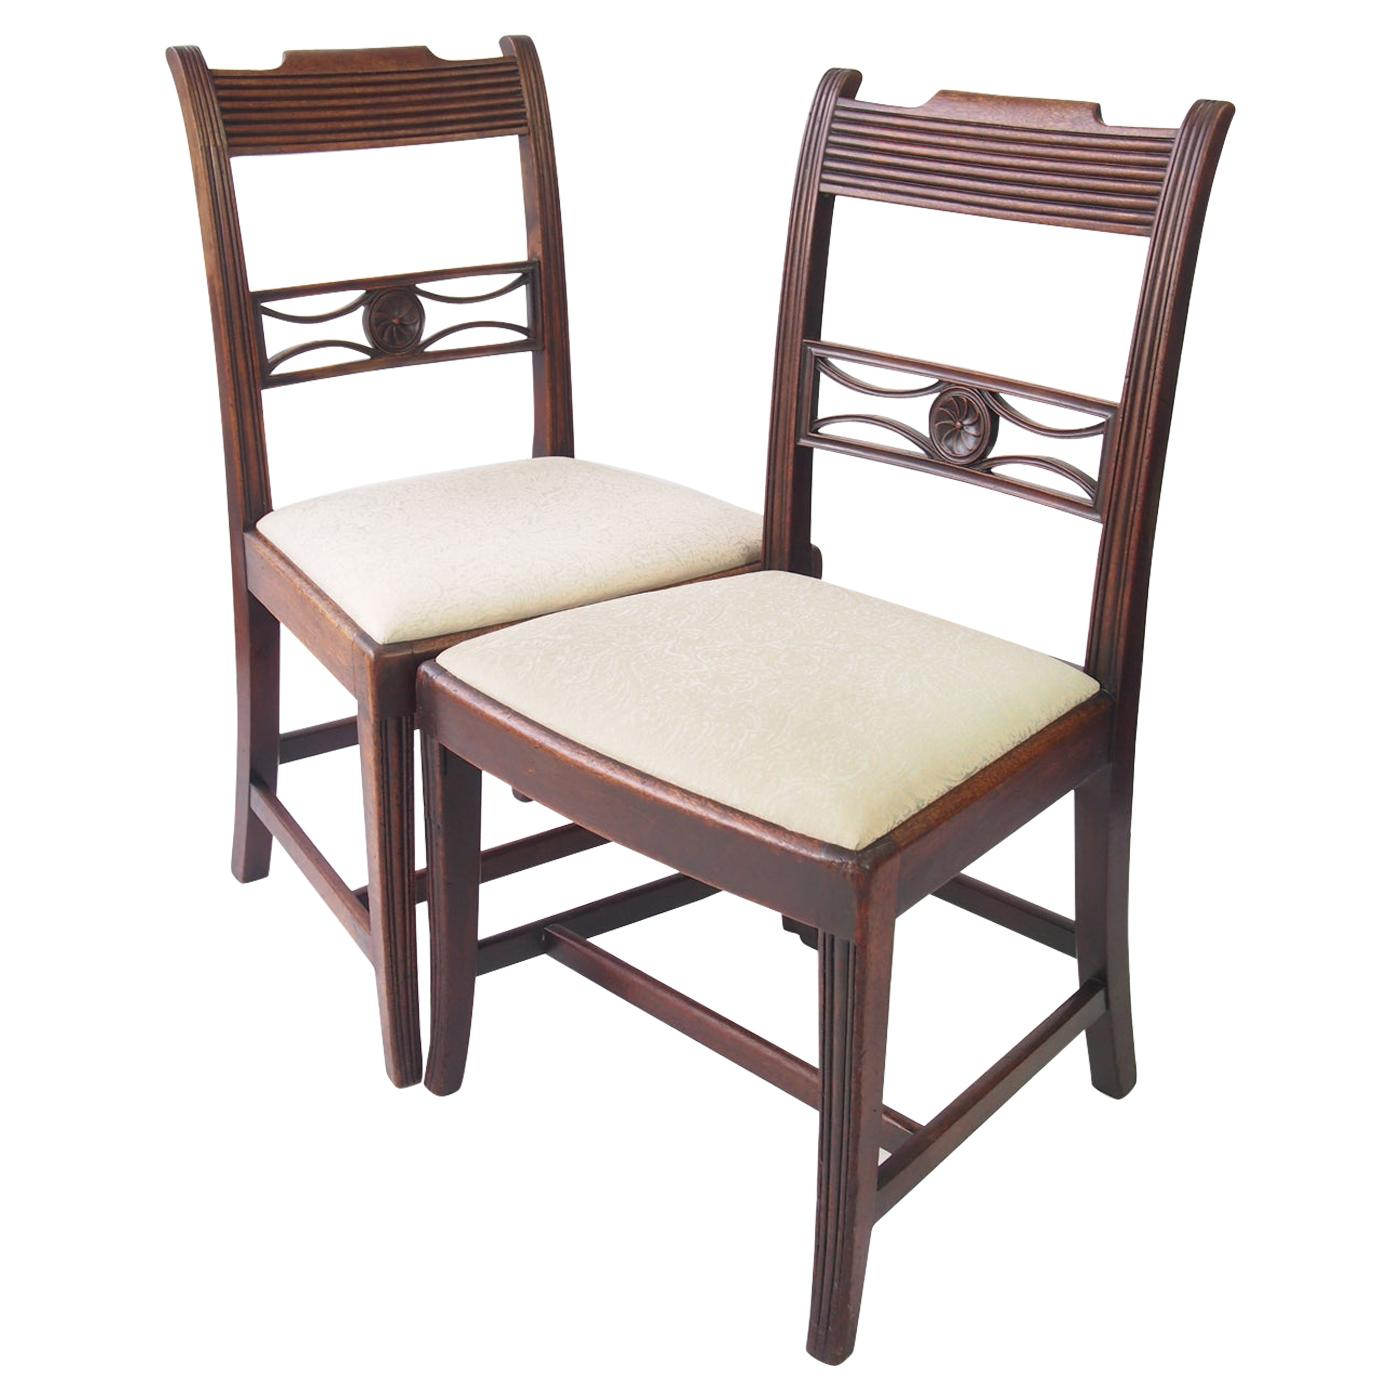 Delicieux Antique English Regency Mahogany Chairs Circa 1820 Georgian Dining Chairs,  Pair